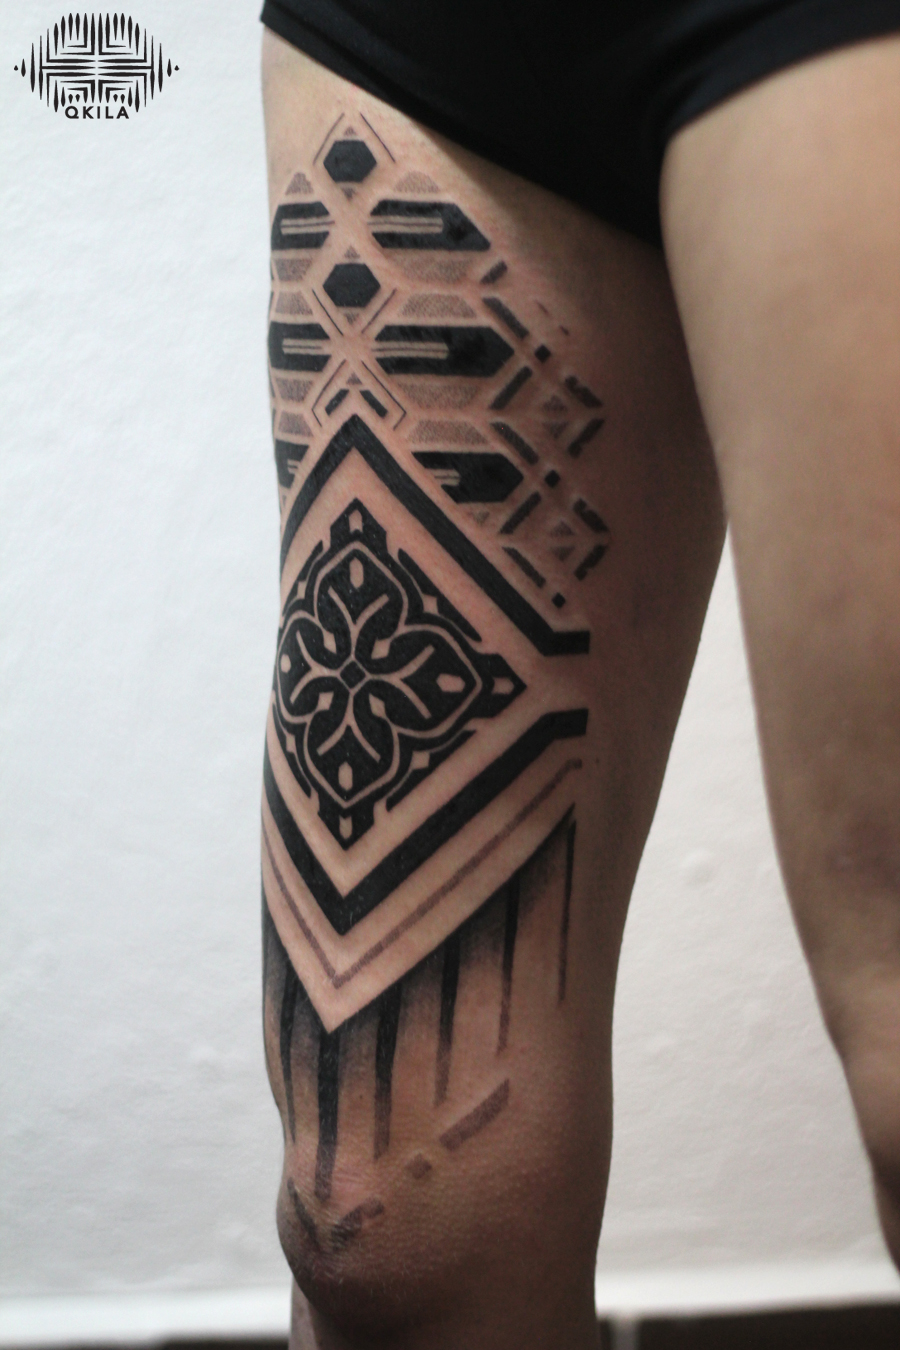 leg tattoo,nimes,black,patterns tattoo,op art, sleeves tattoo, dotwork tattoo, qkila,geometric tattoo, ethnique tattoo, les tatoués anonymes, nimes